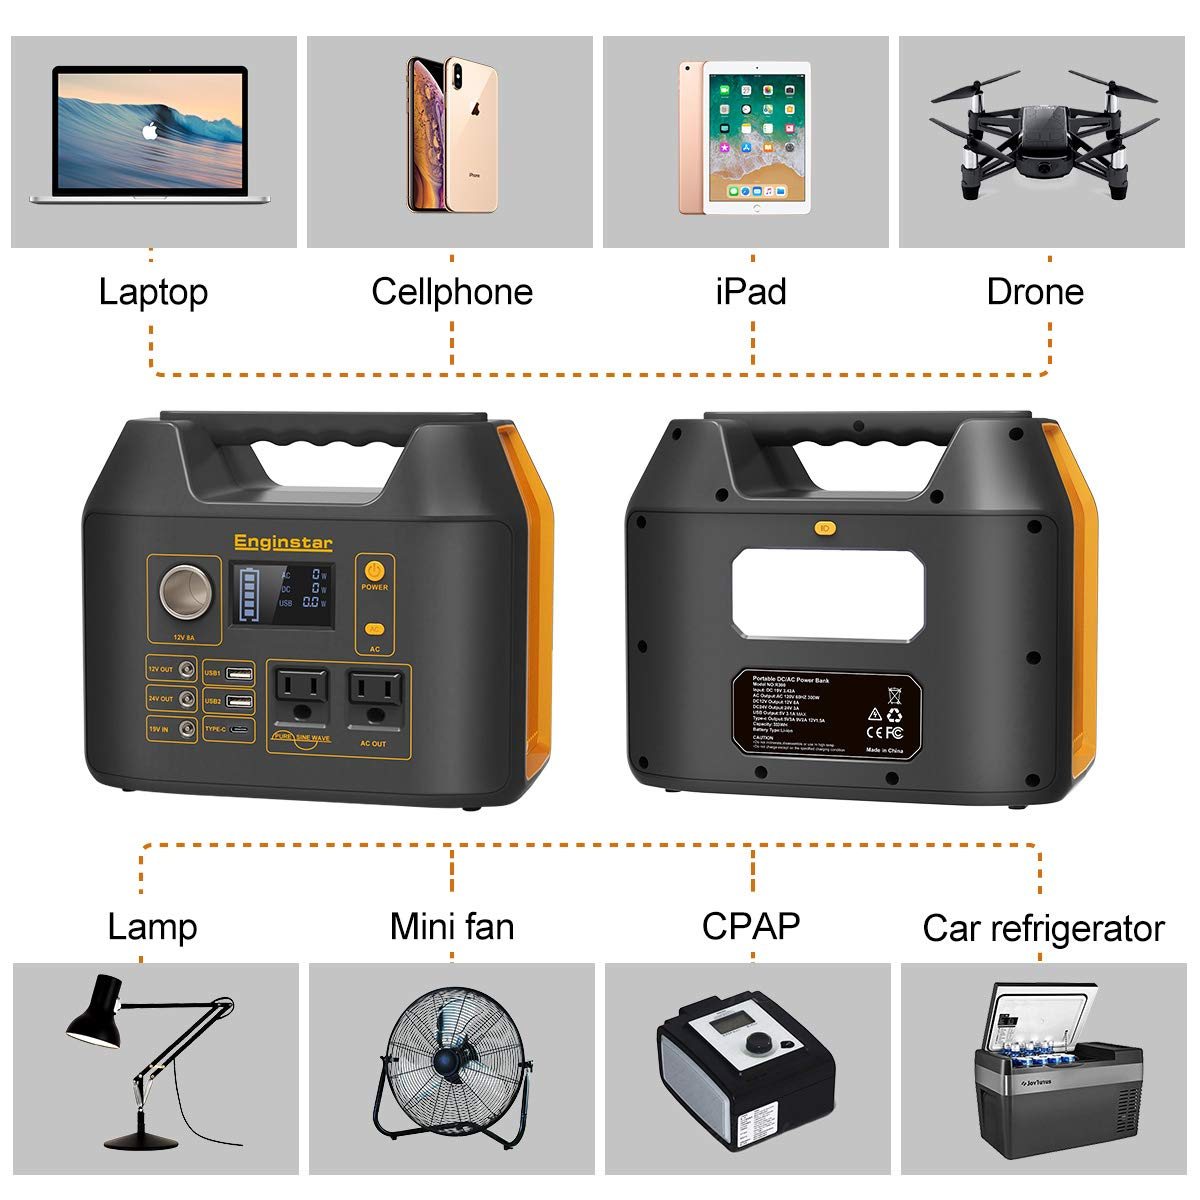 Solar Panel Not Included Enginstar Portable Power Station 298Wh 110V//300W Outdoors Solar Generator for Laptops Cellphones Drones and More Electronics Backup Camping Lithium Battery Pack